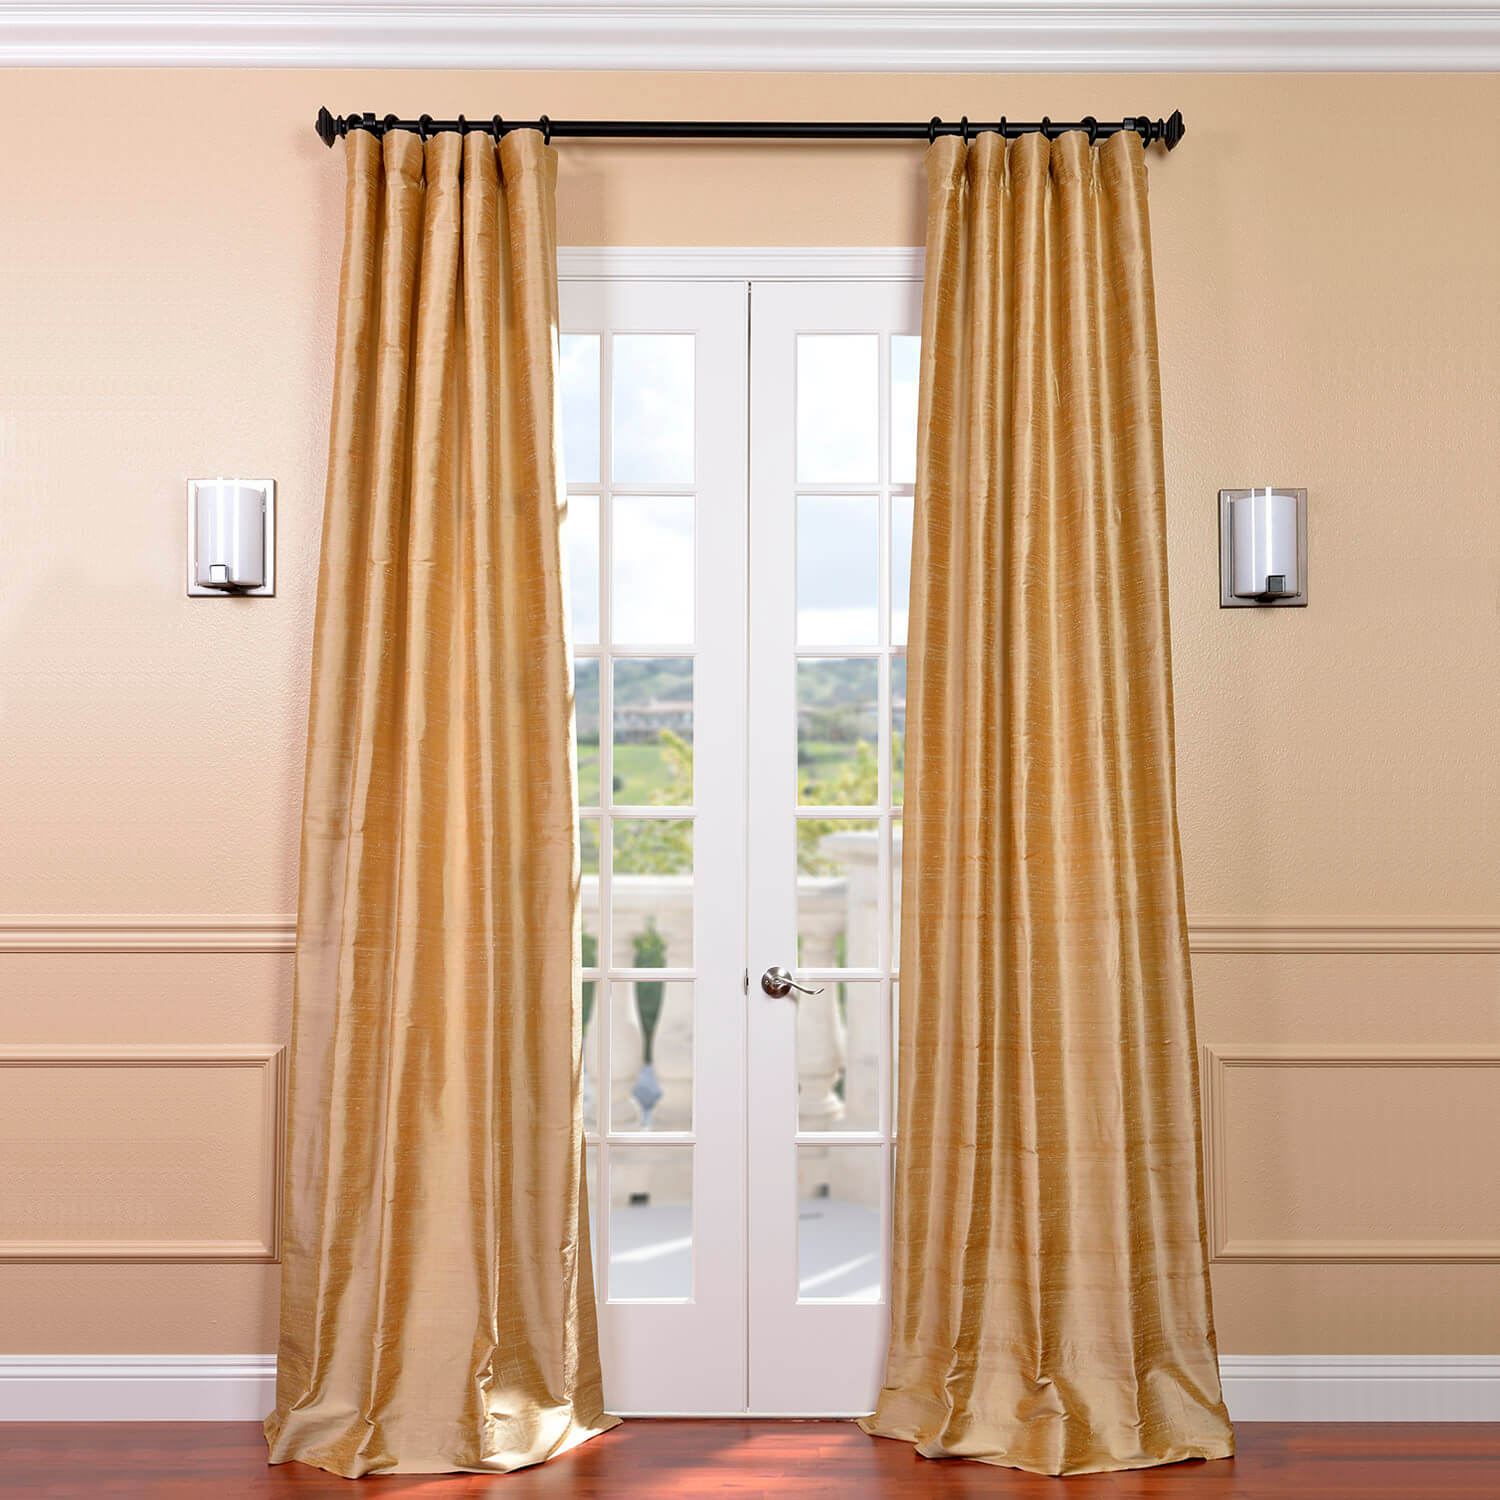 Biscotti Textured Dupioni Silk Curtains, Silk Drapes